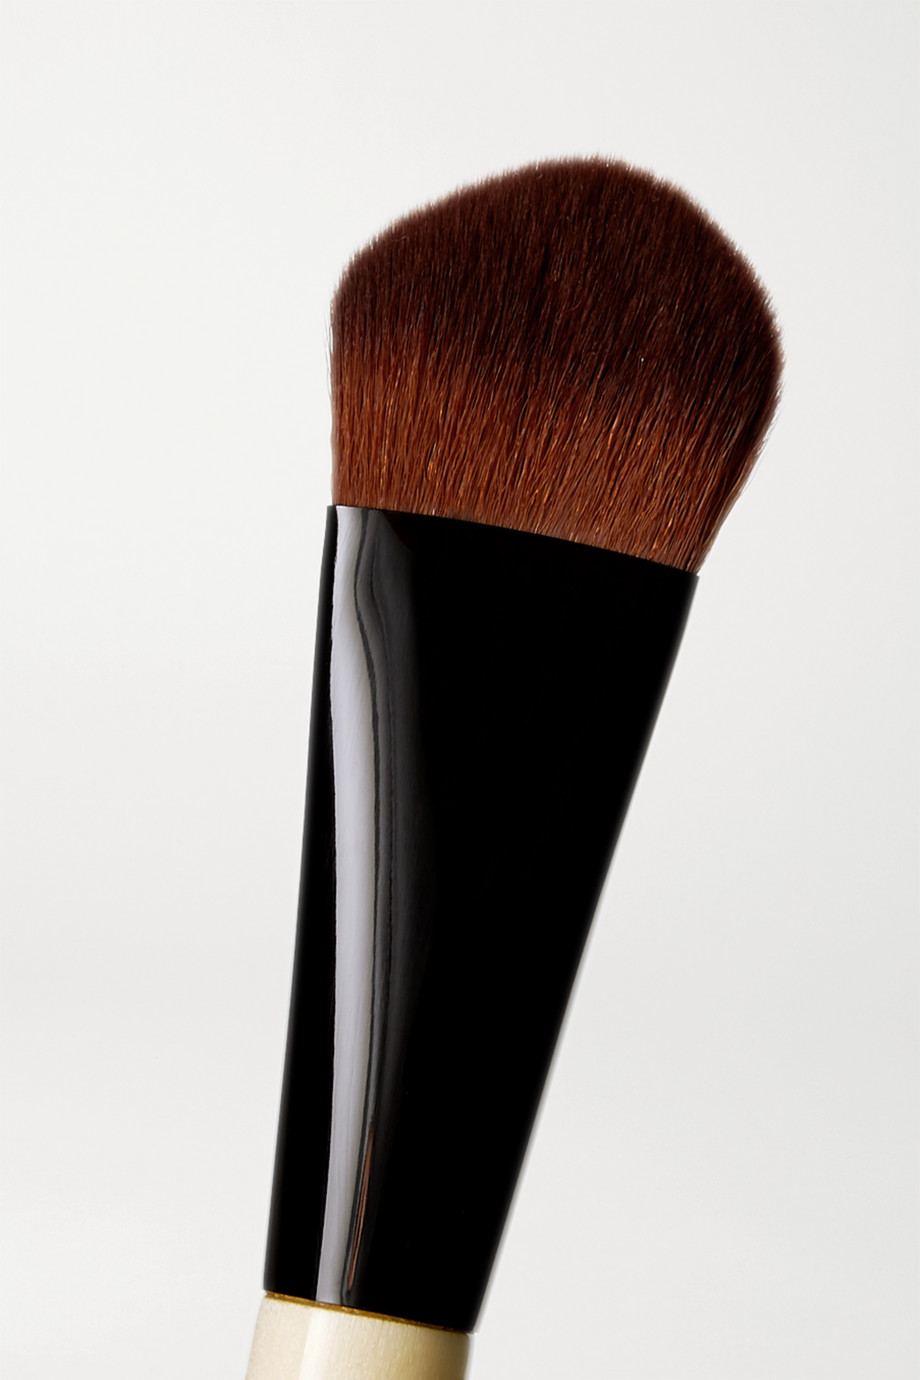 BOBBI BROWN Precise Buffing Brush